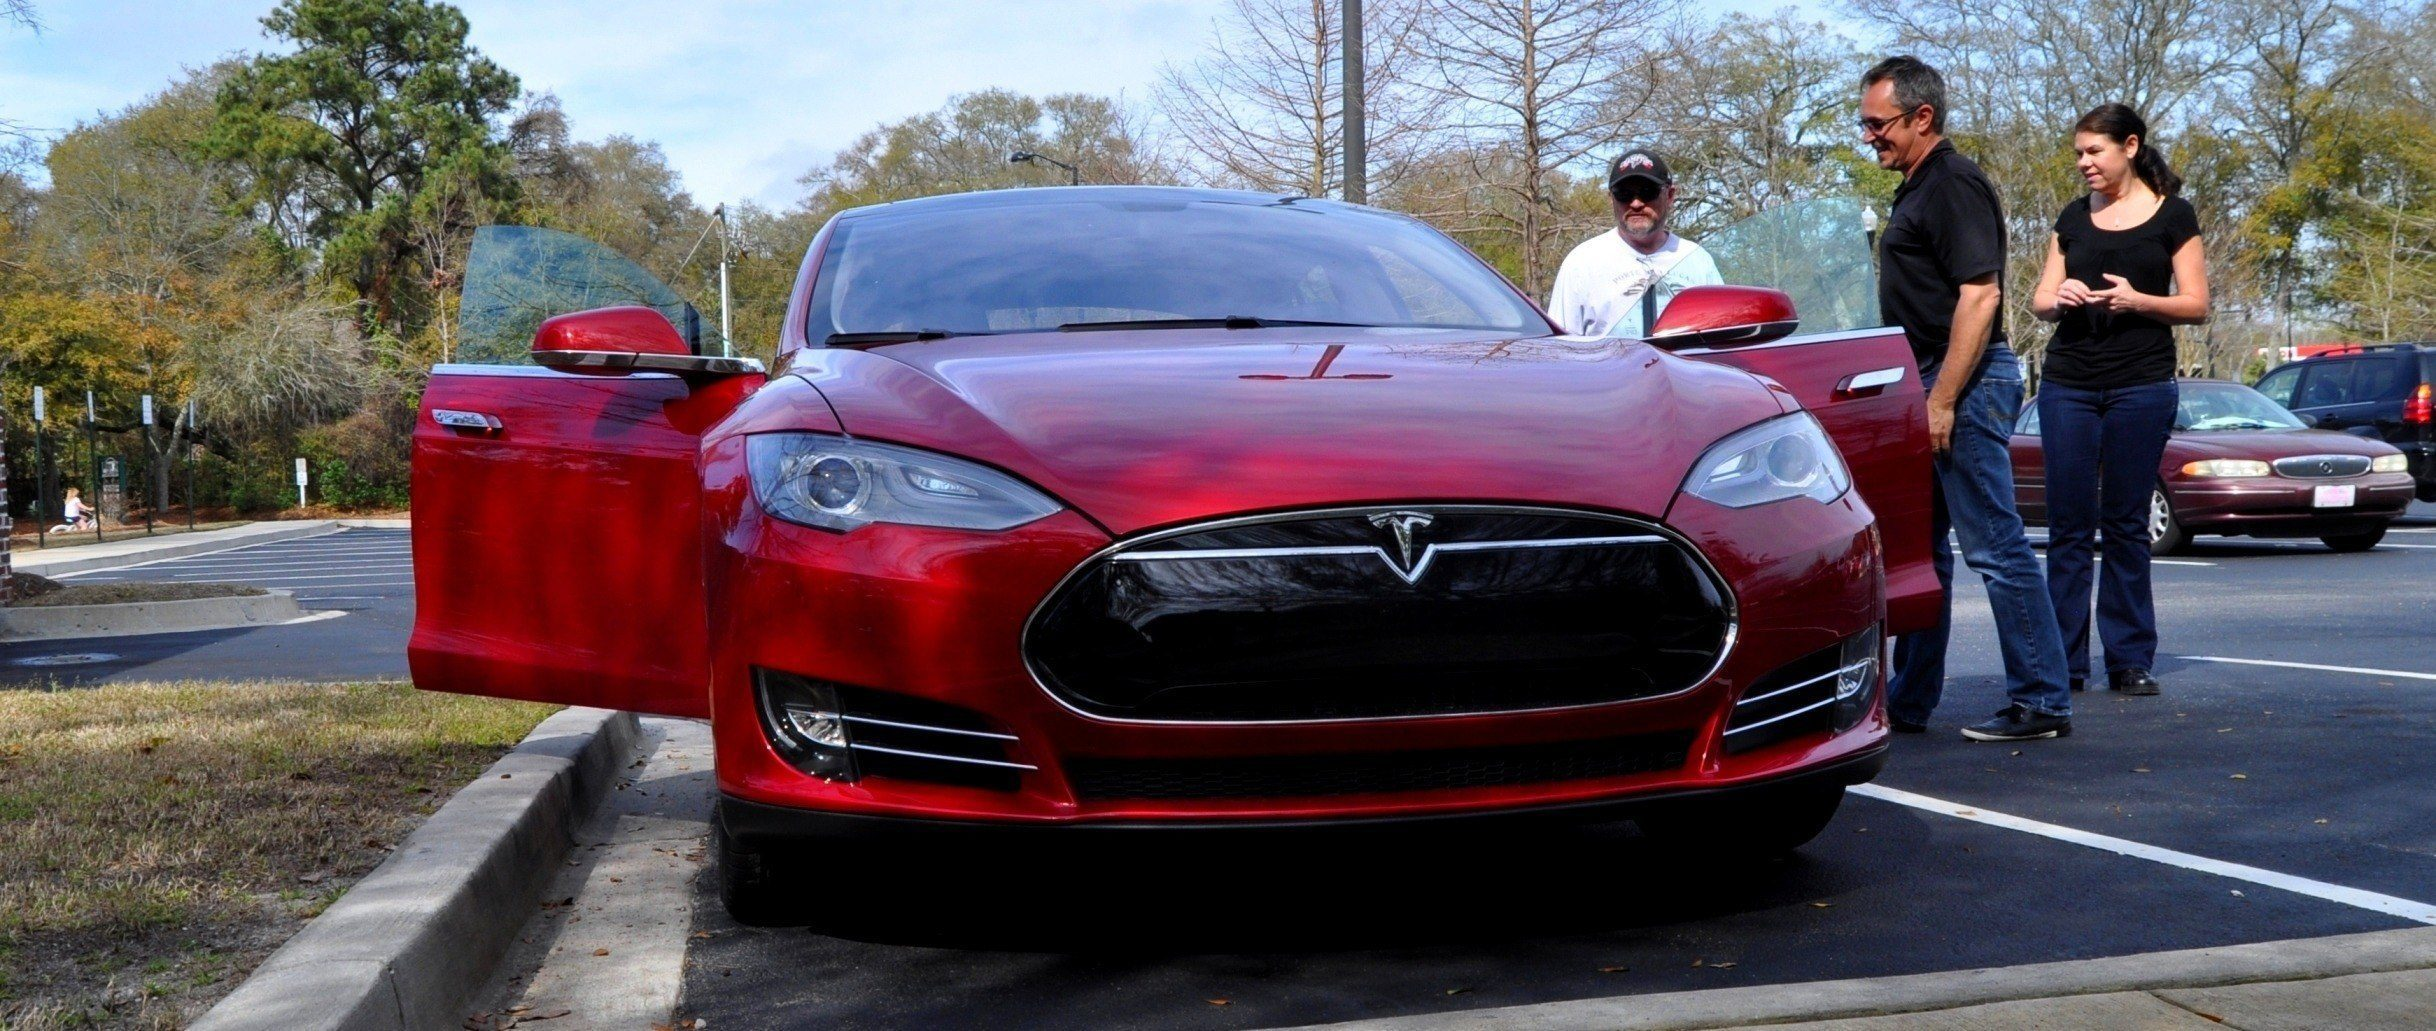 2014 TESLA Model S 85  Road Test Video Review  1500words